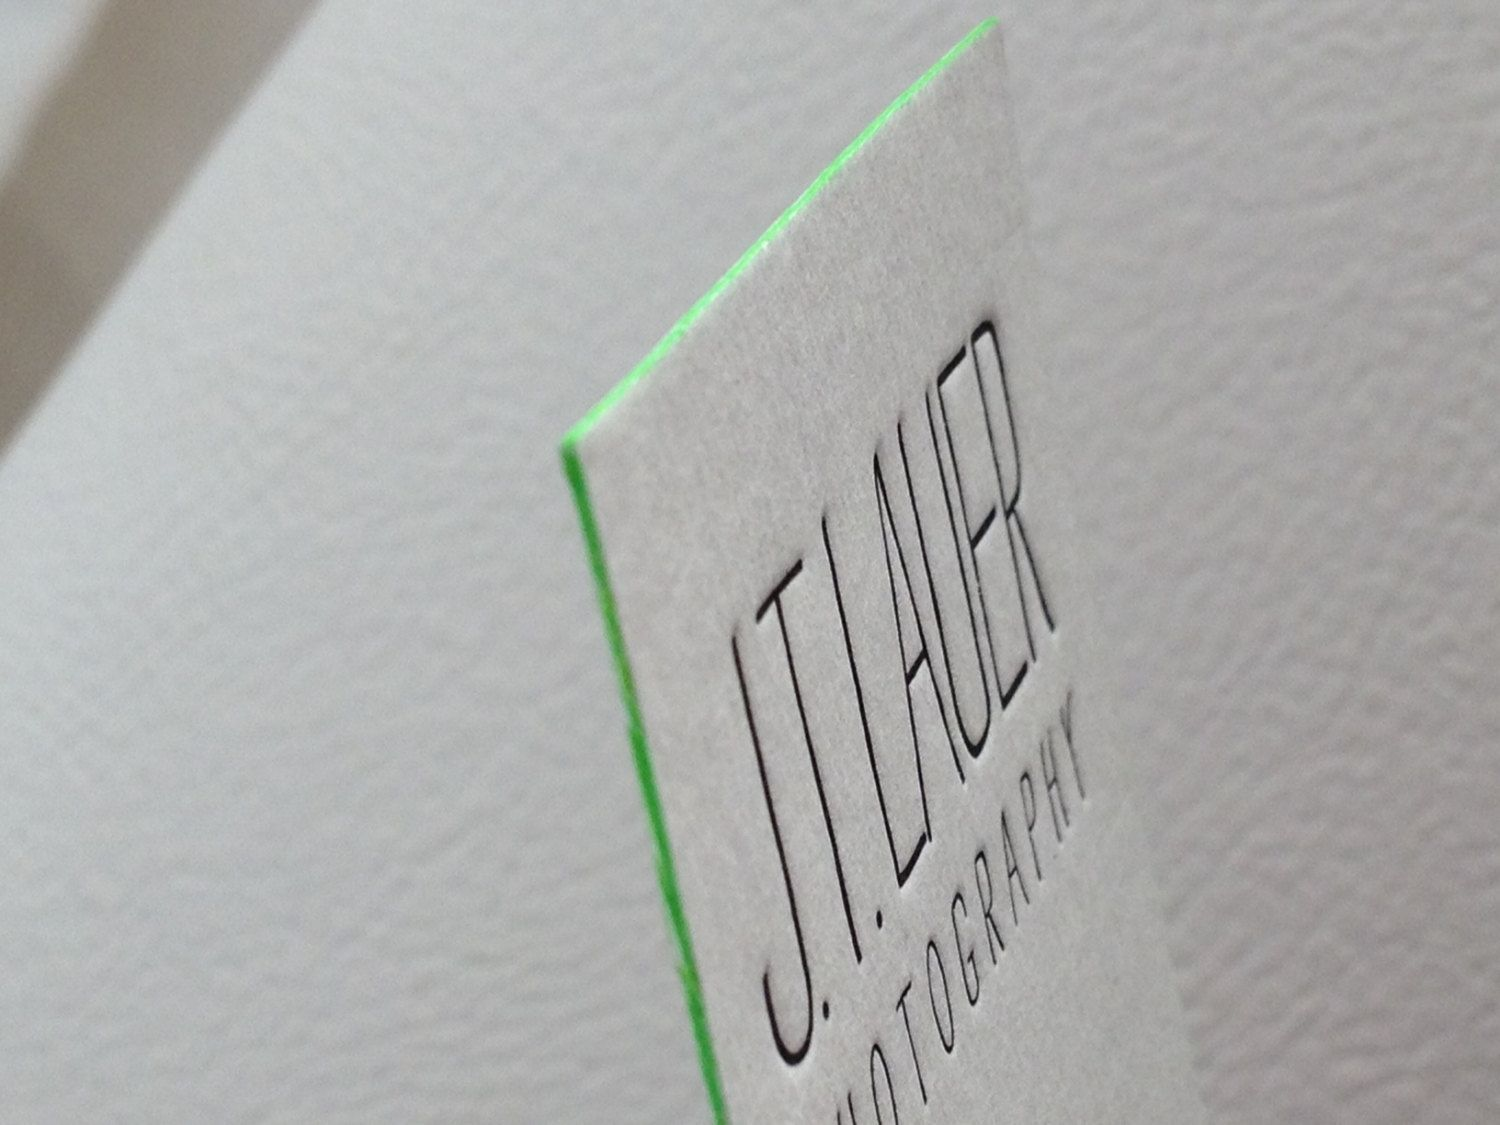 100 letterpress business cards 1 color 1 side rives 400 gsm 100 letterpress business cards 1 color 1 side rives 400 gsm paper color view more on the link httpzeppyproductgb3156182312 reheart Choice Image